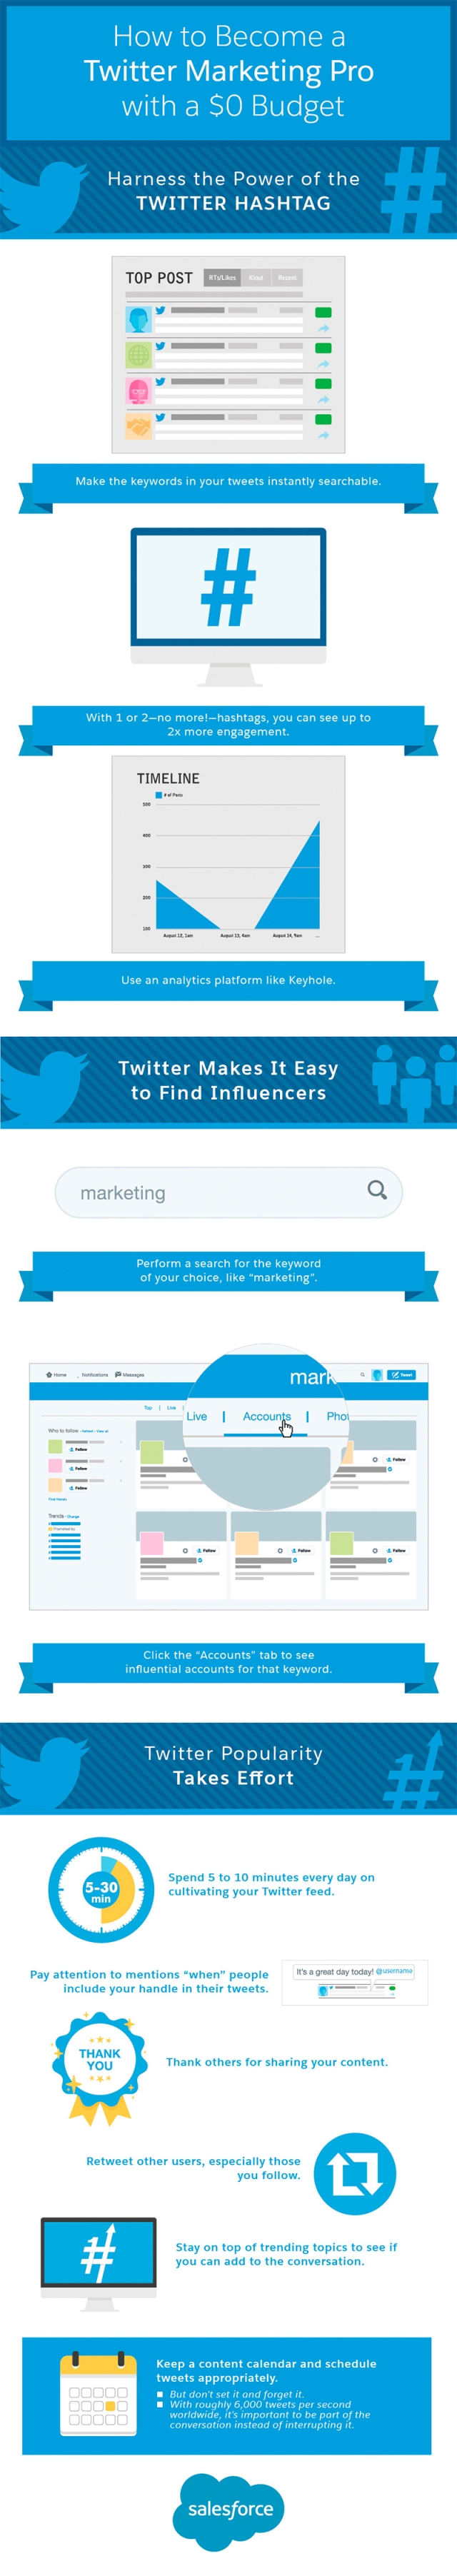 How to Become a Twitter Marketing Pro Without Spending a Penny